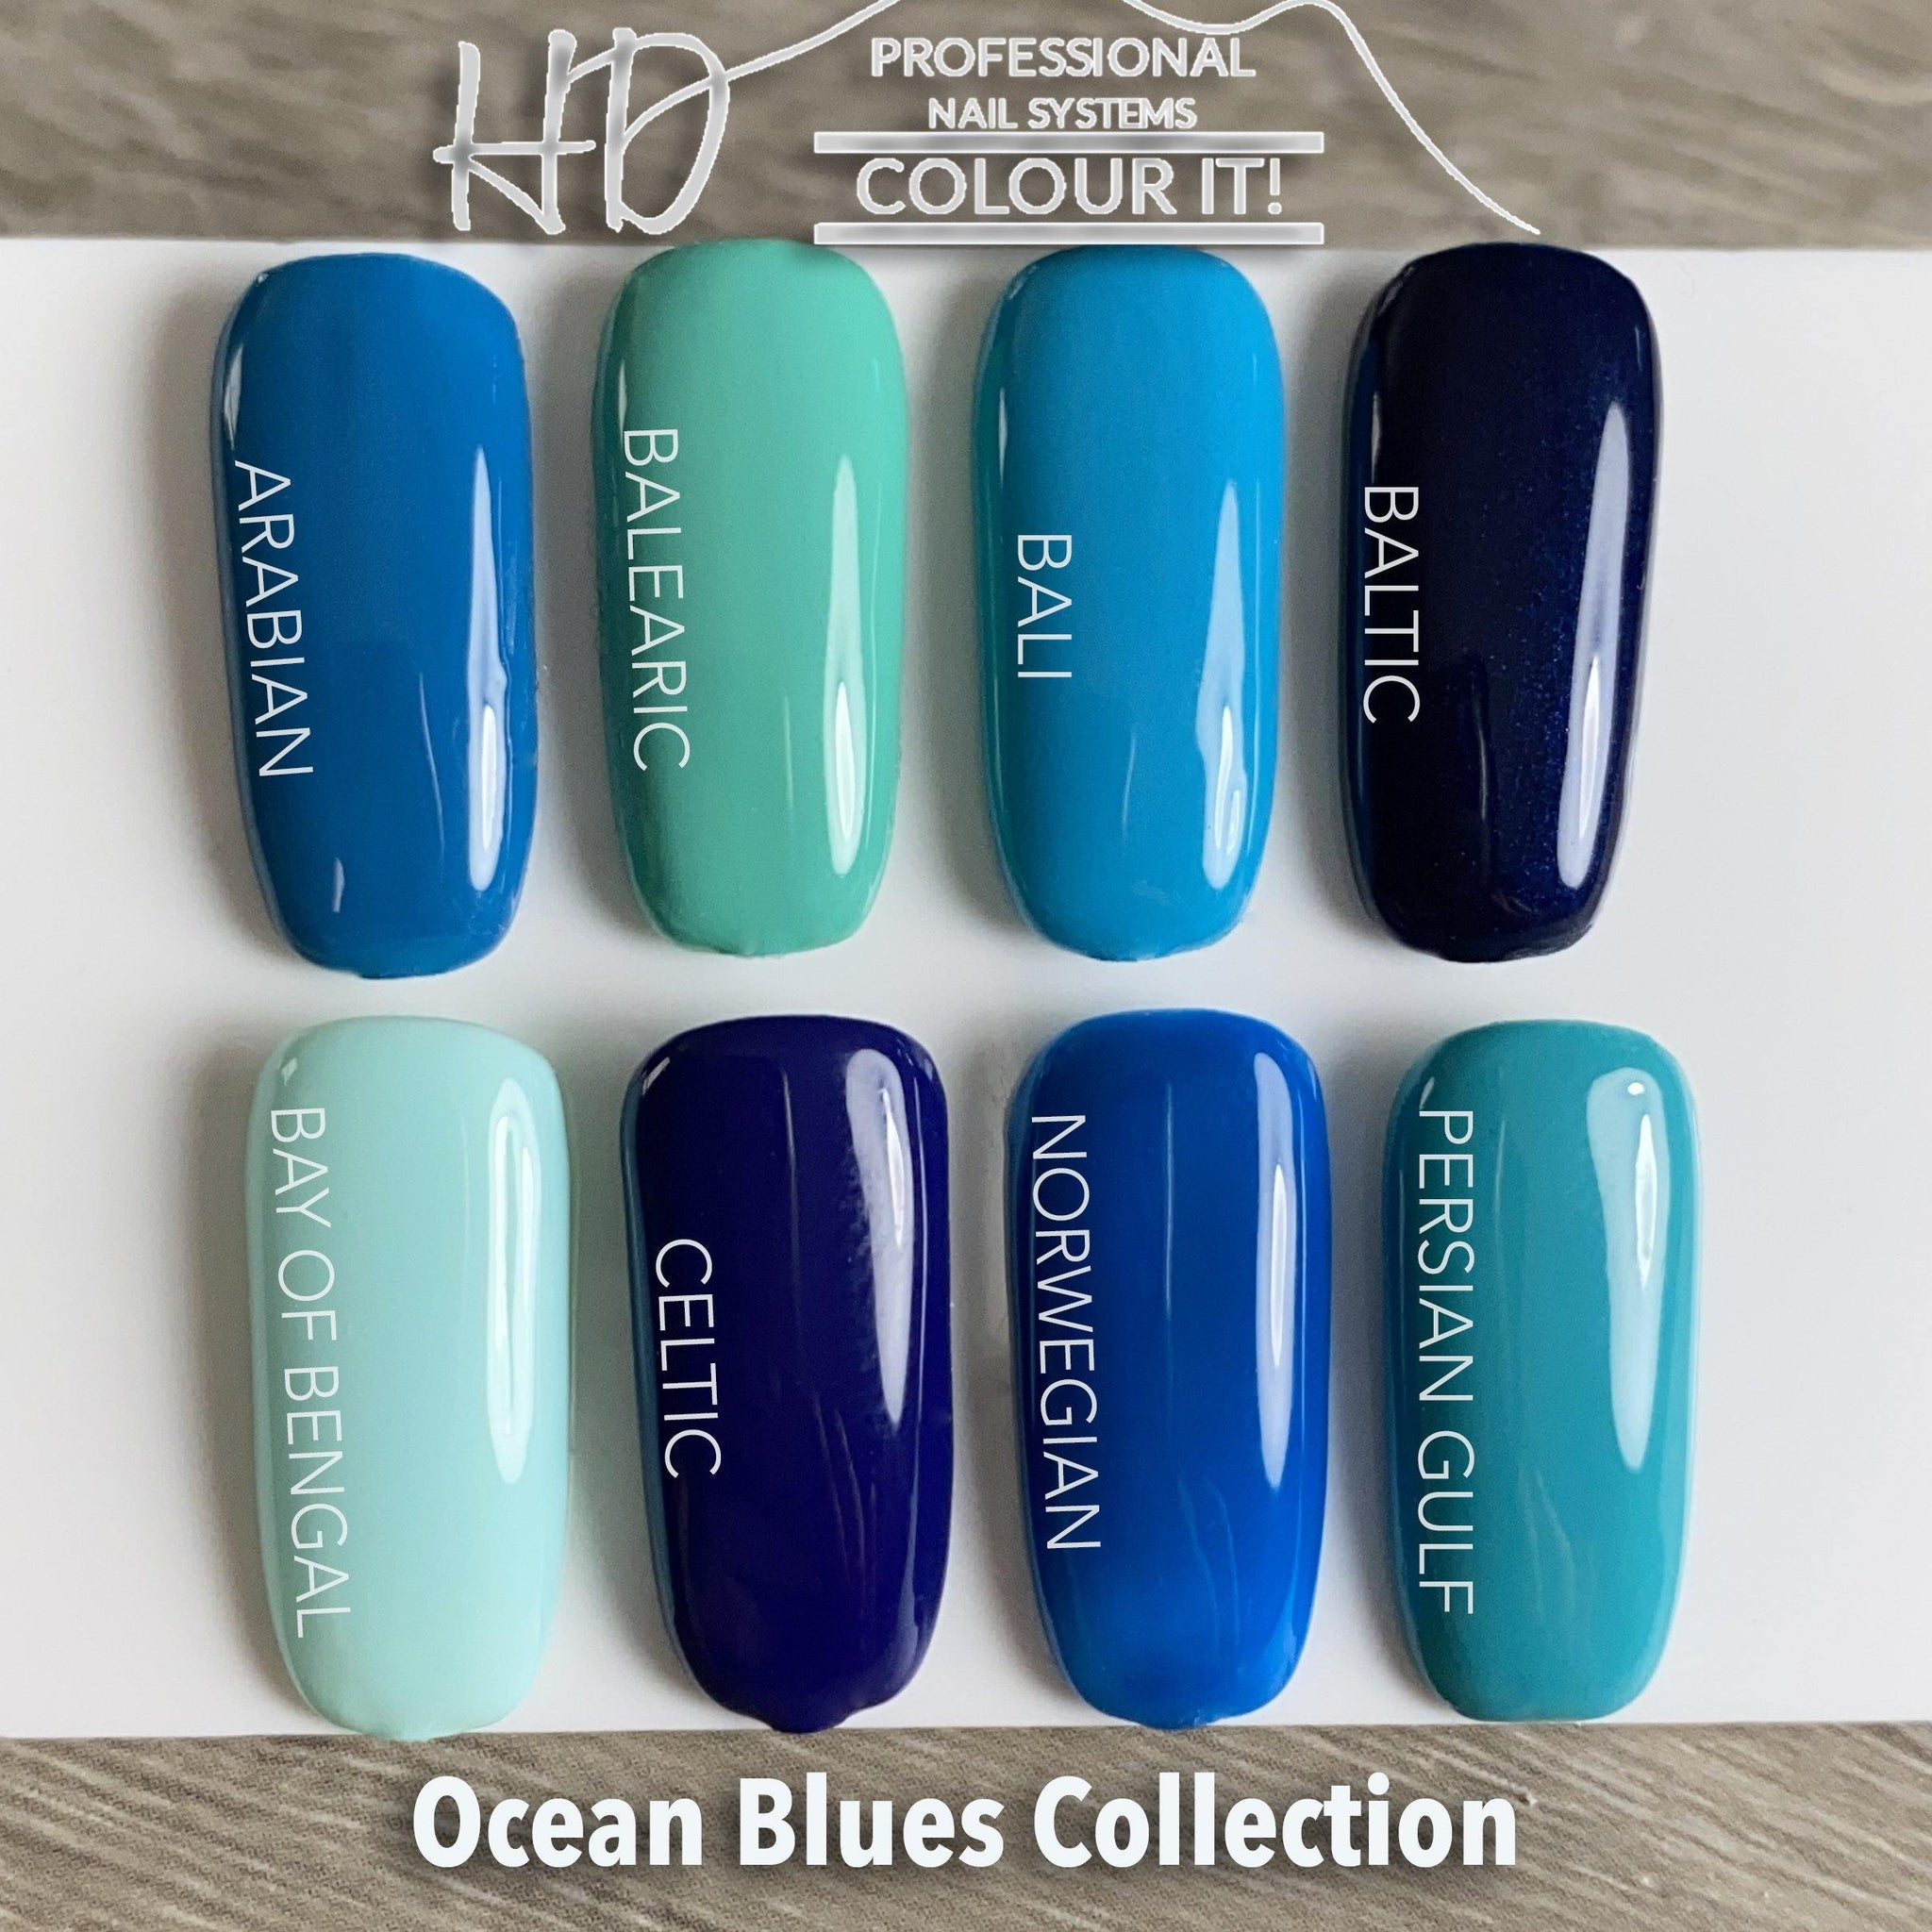 HD Colour It! Ocean Blues Collection (all 8 colors 15ml)